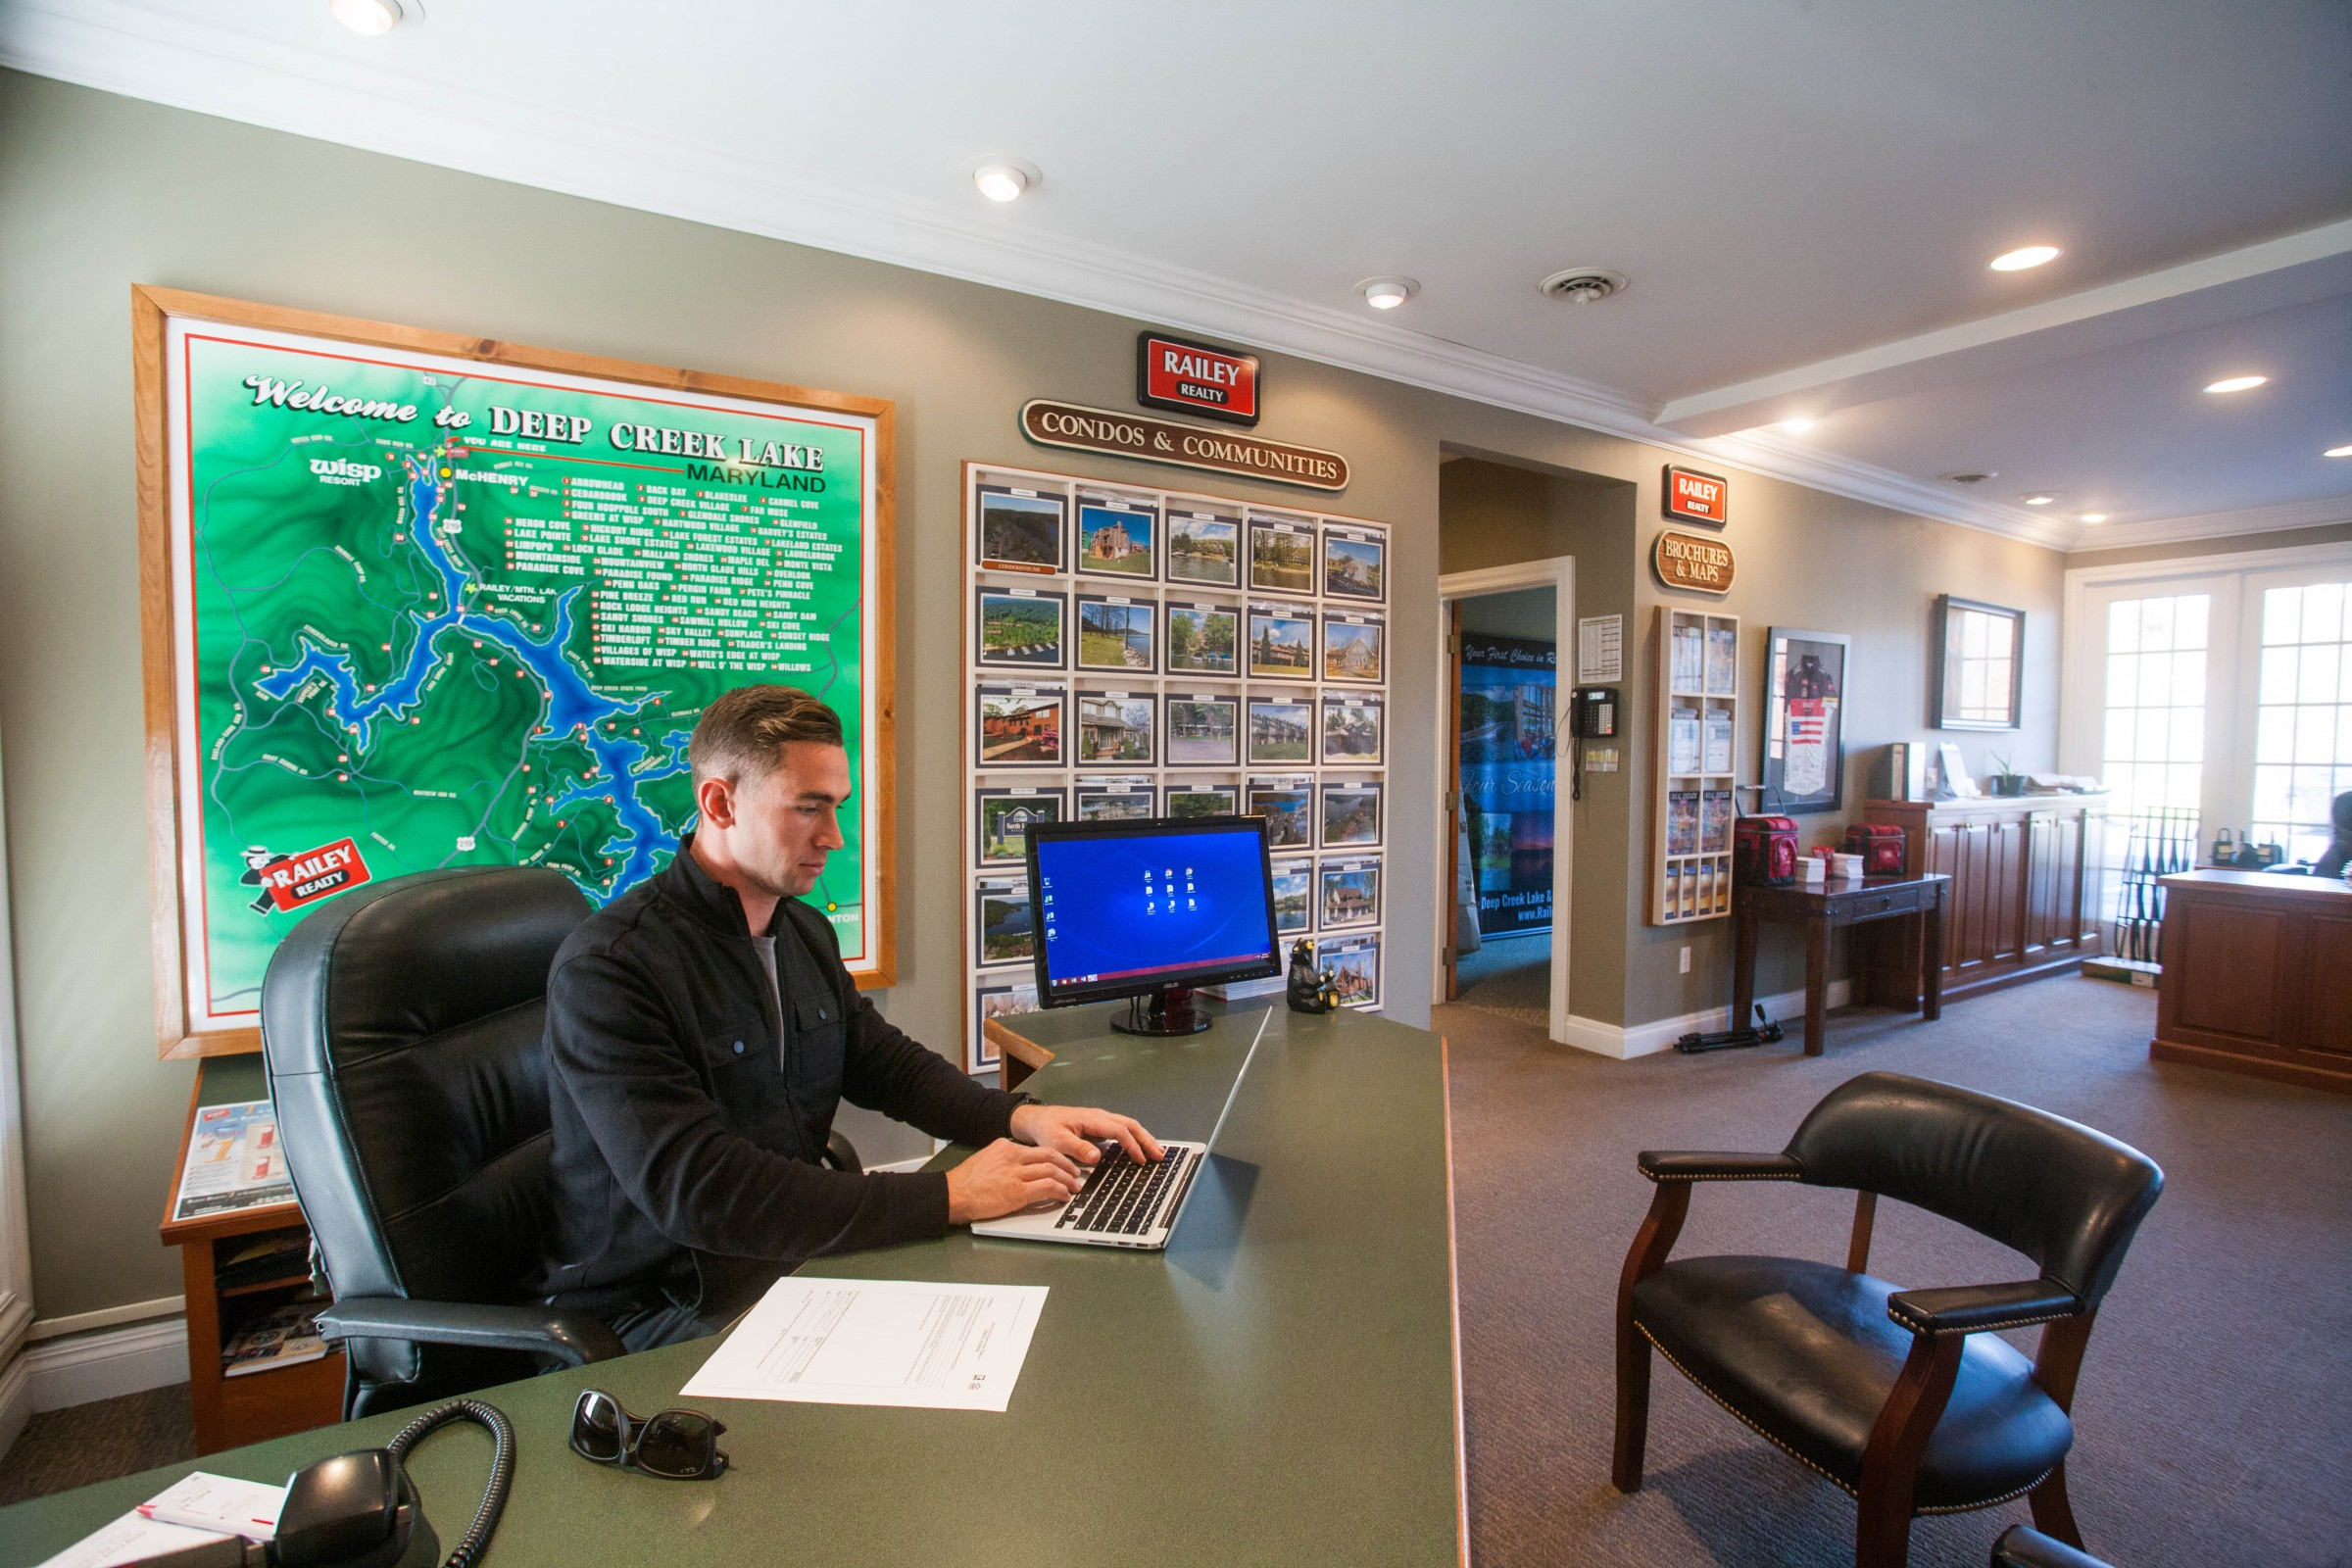 Nick at the Railey Realty office.